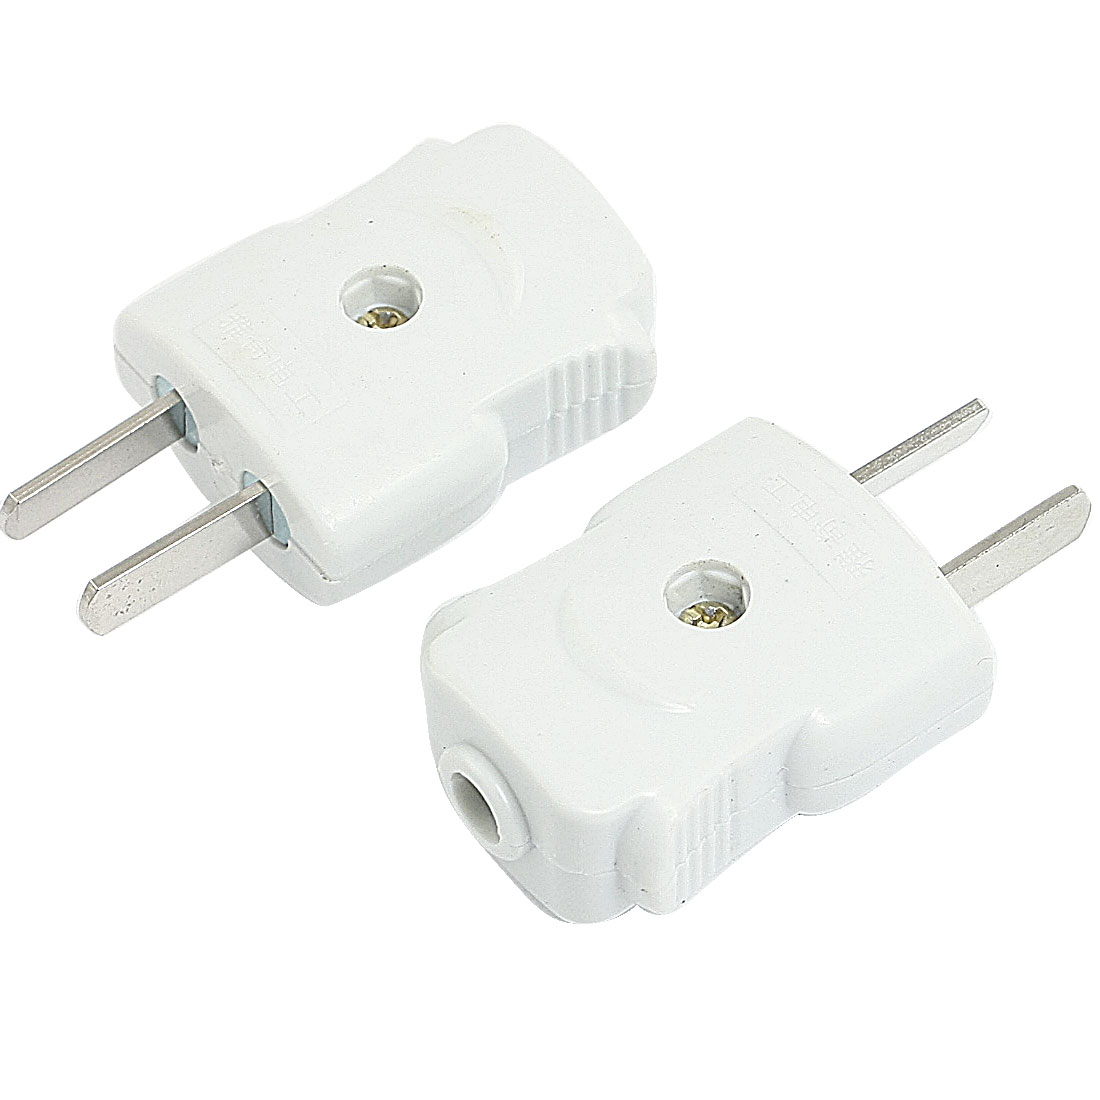 2 Pcs Adjustable Flat 2 Pin Cable Connection Adapter AC 250V 10A US Plug